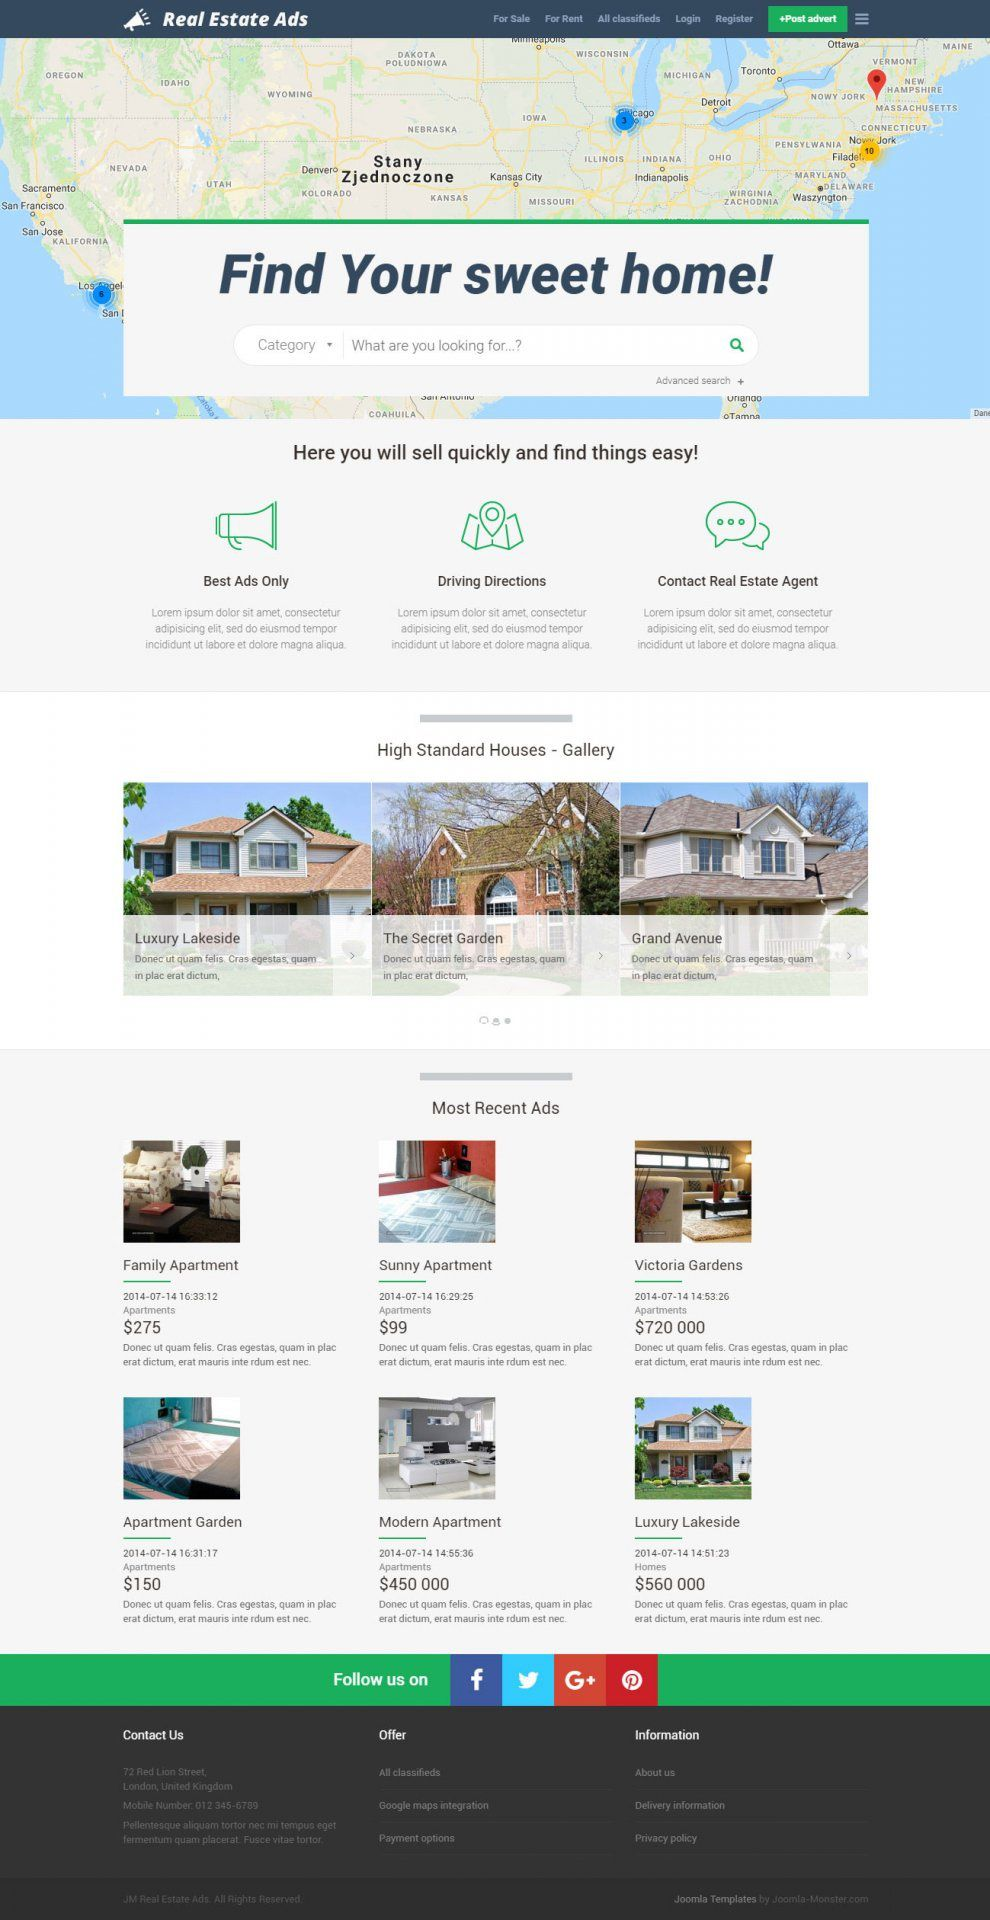 005 Impressive Real Estate Ad Template High Resolution  Templates Commercial Free Listing Flyer InstagramFull